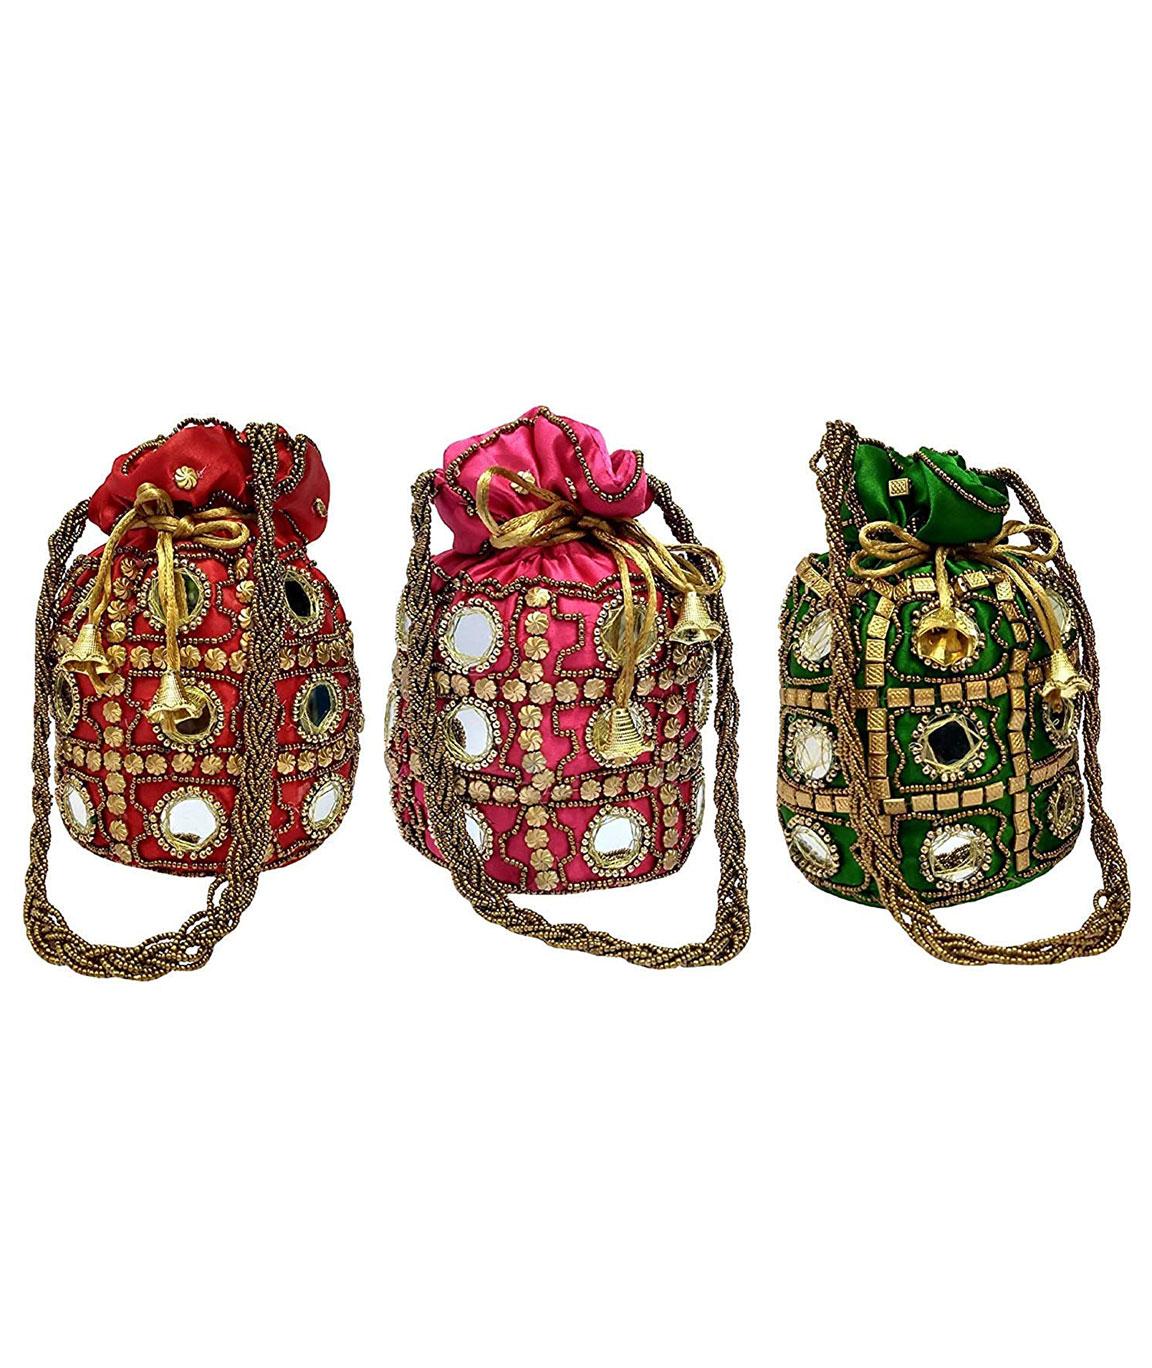 DN Enterprises Latest & Attractive Potli Bags For Women Fancy Potli Bags For Women